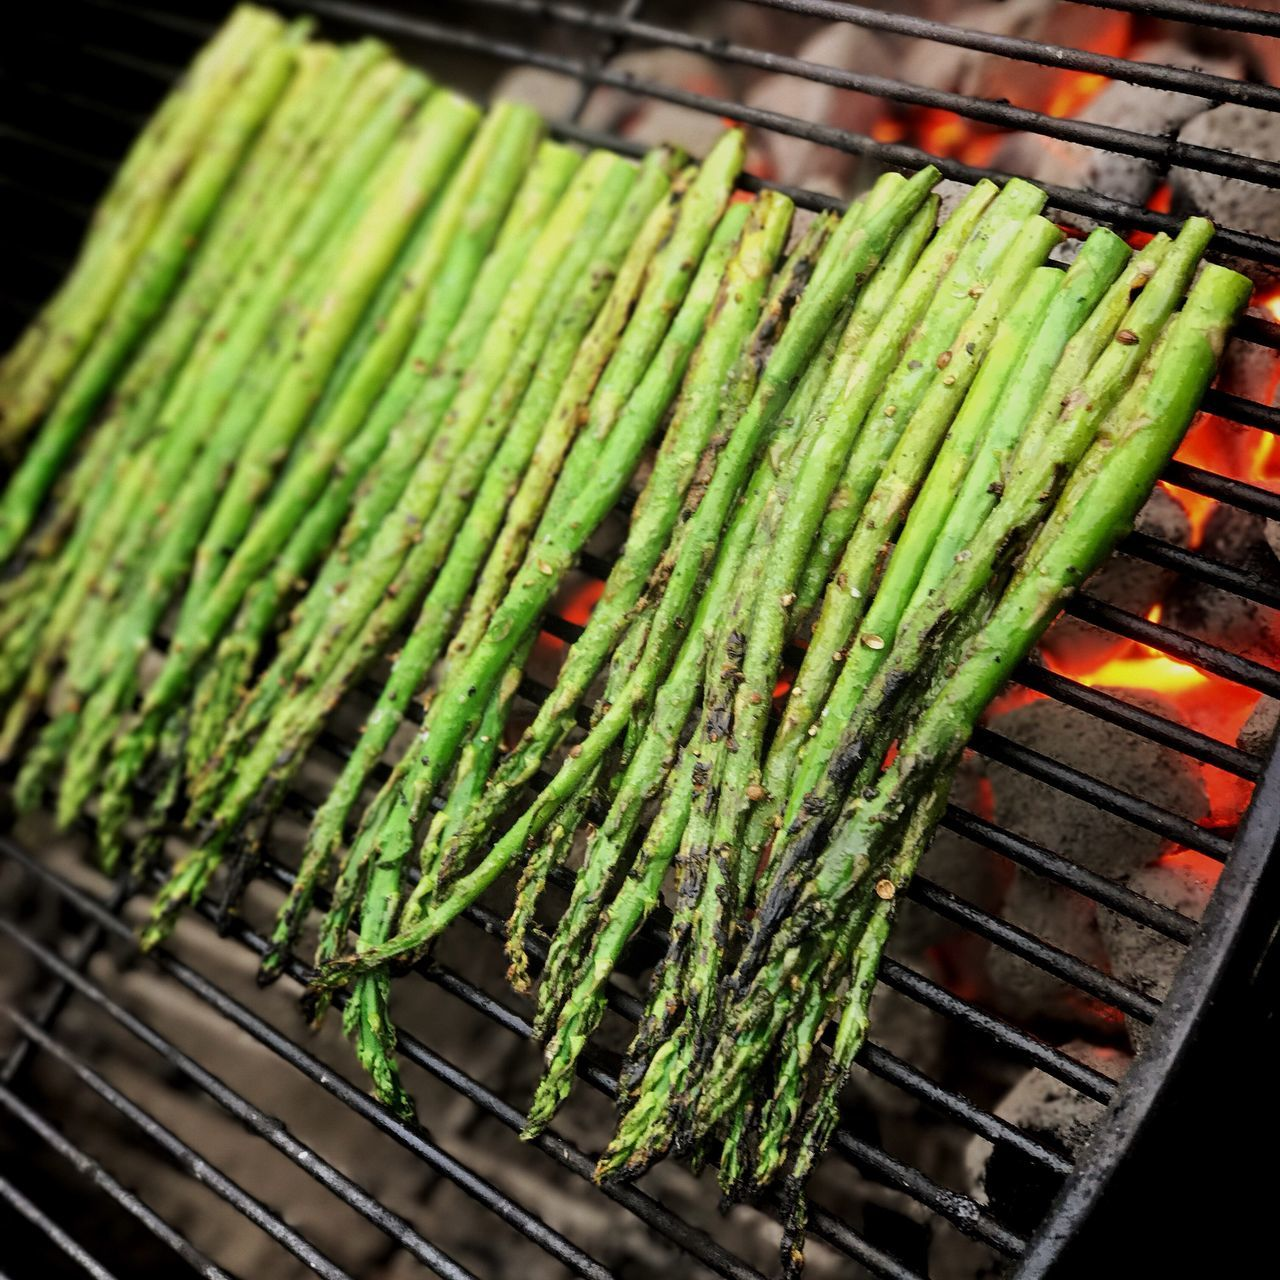 Asparagus on a Charcoal Grill Green Color Vegetable Healthy Eating Freshness Outdoors No People Grilling Open Flame Spring Summer BBQ BBQ Season